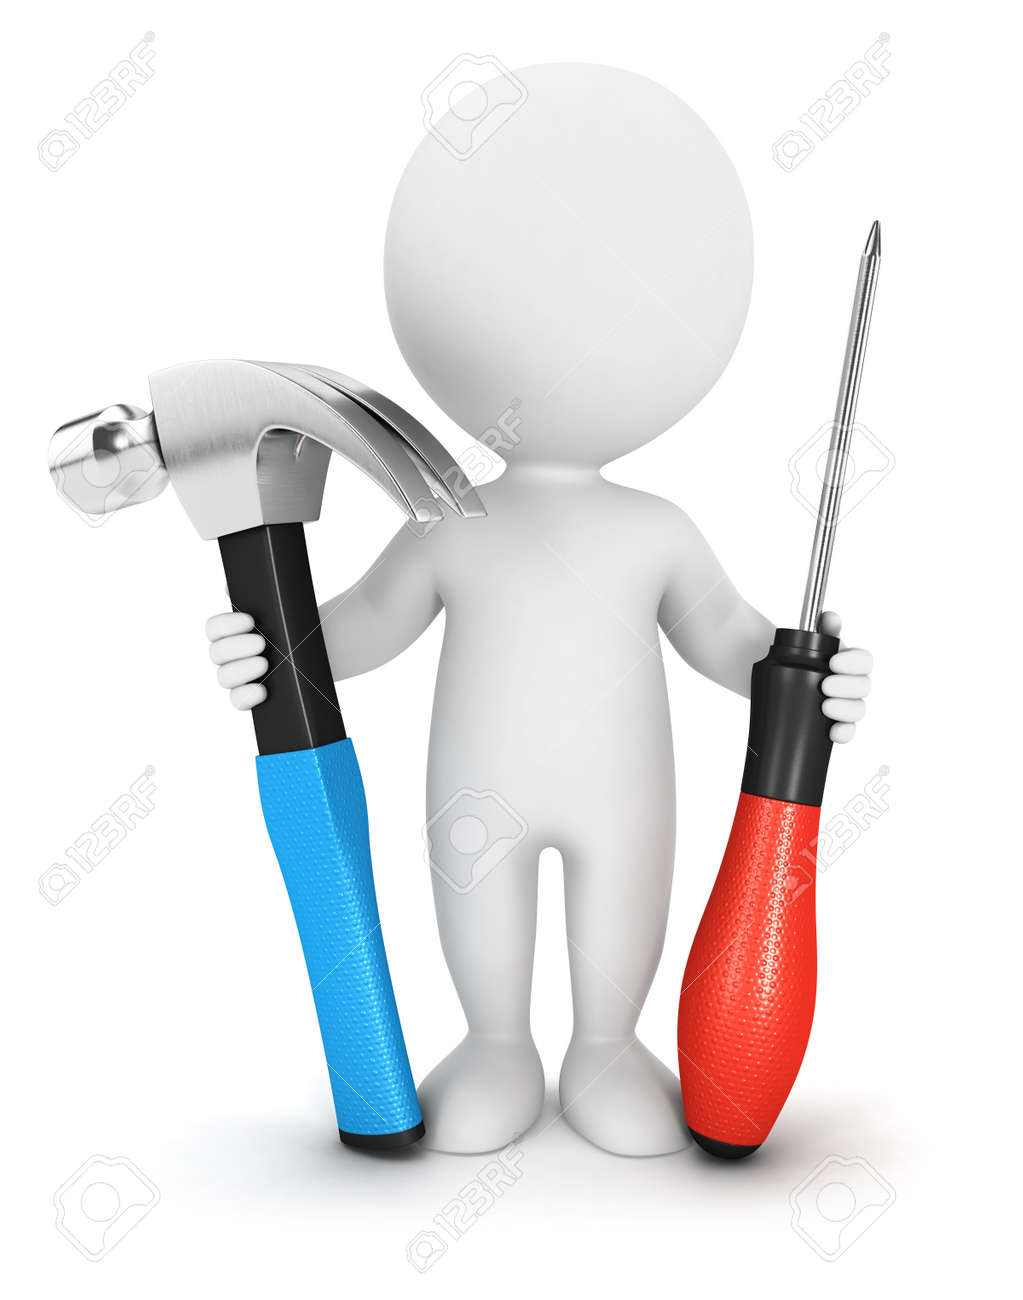 3d white people with tools, isolated white background, 3d image Stock Photo - 19245188